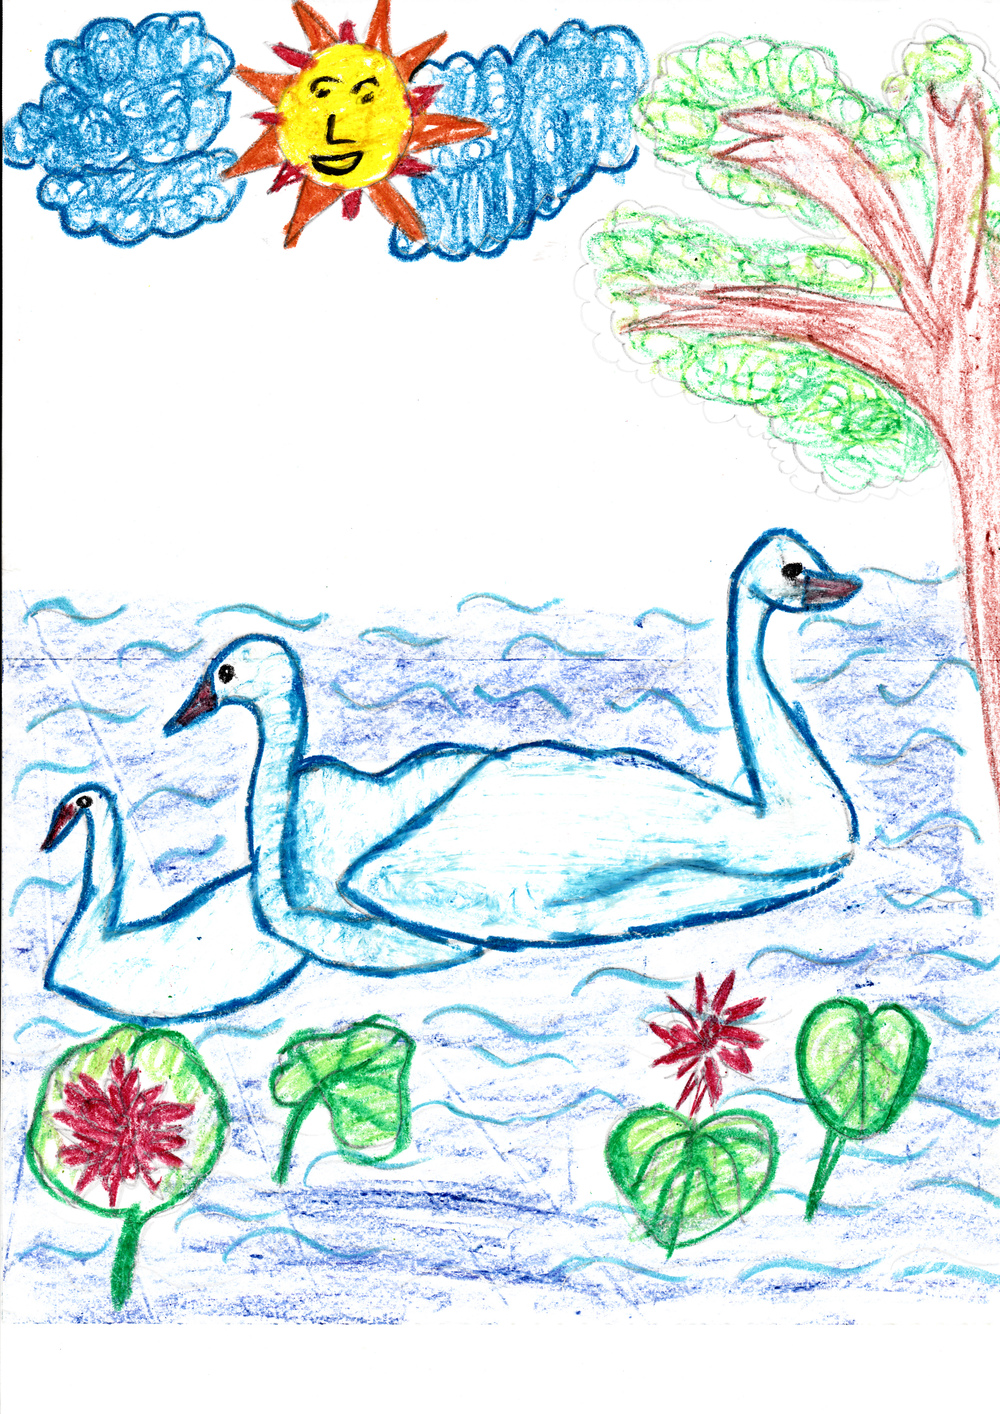 Students art work from Bolawalana Orphanage 3_0041.jpg